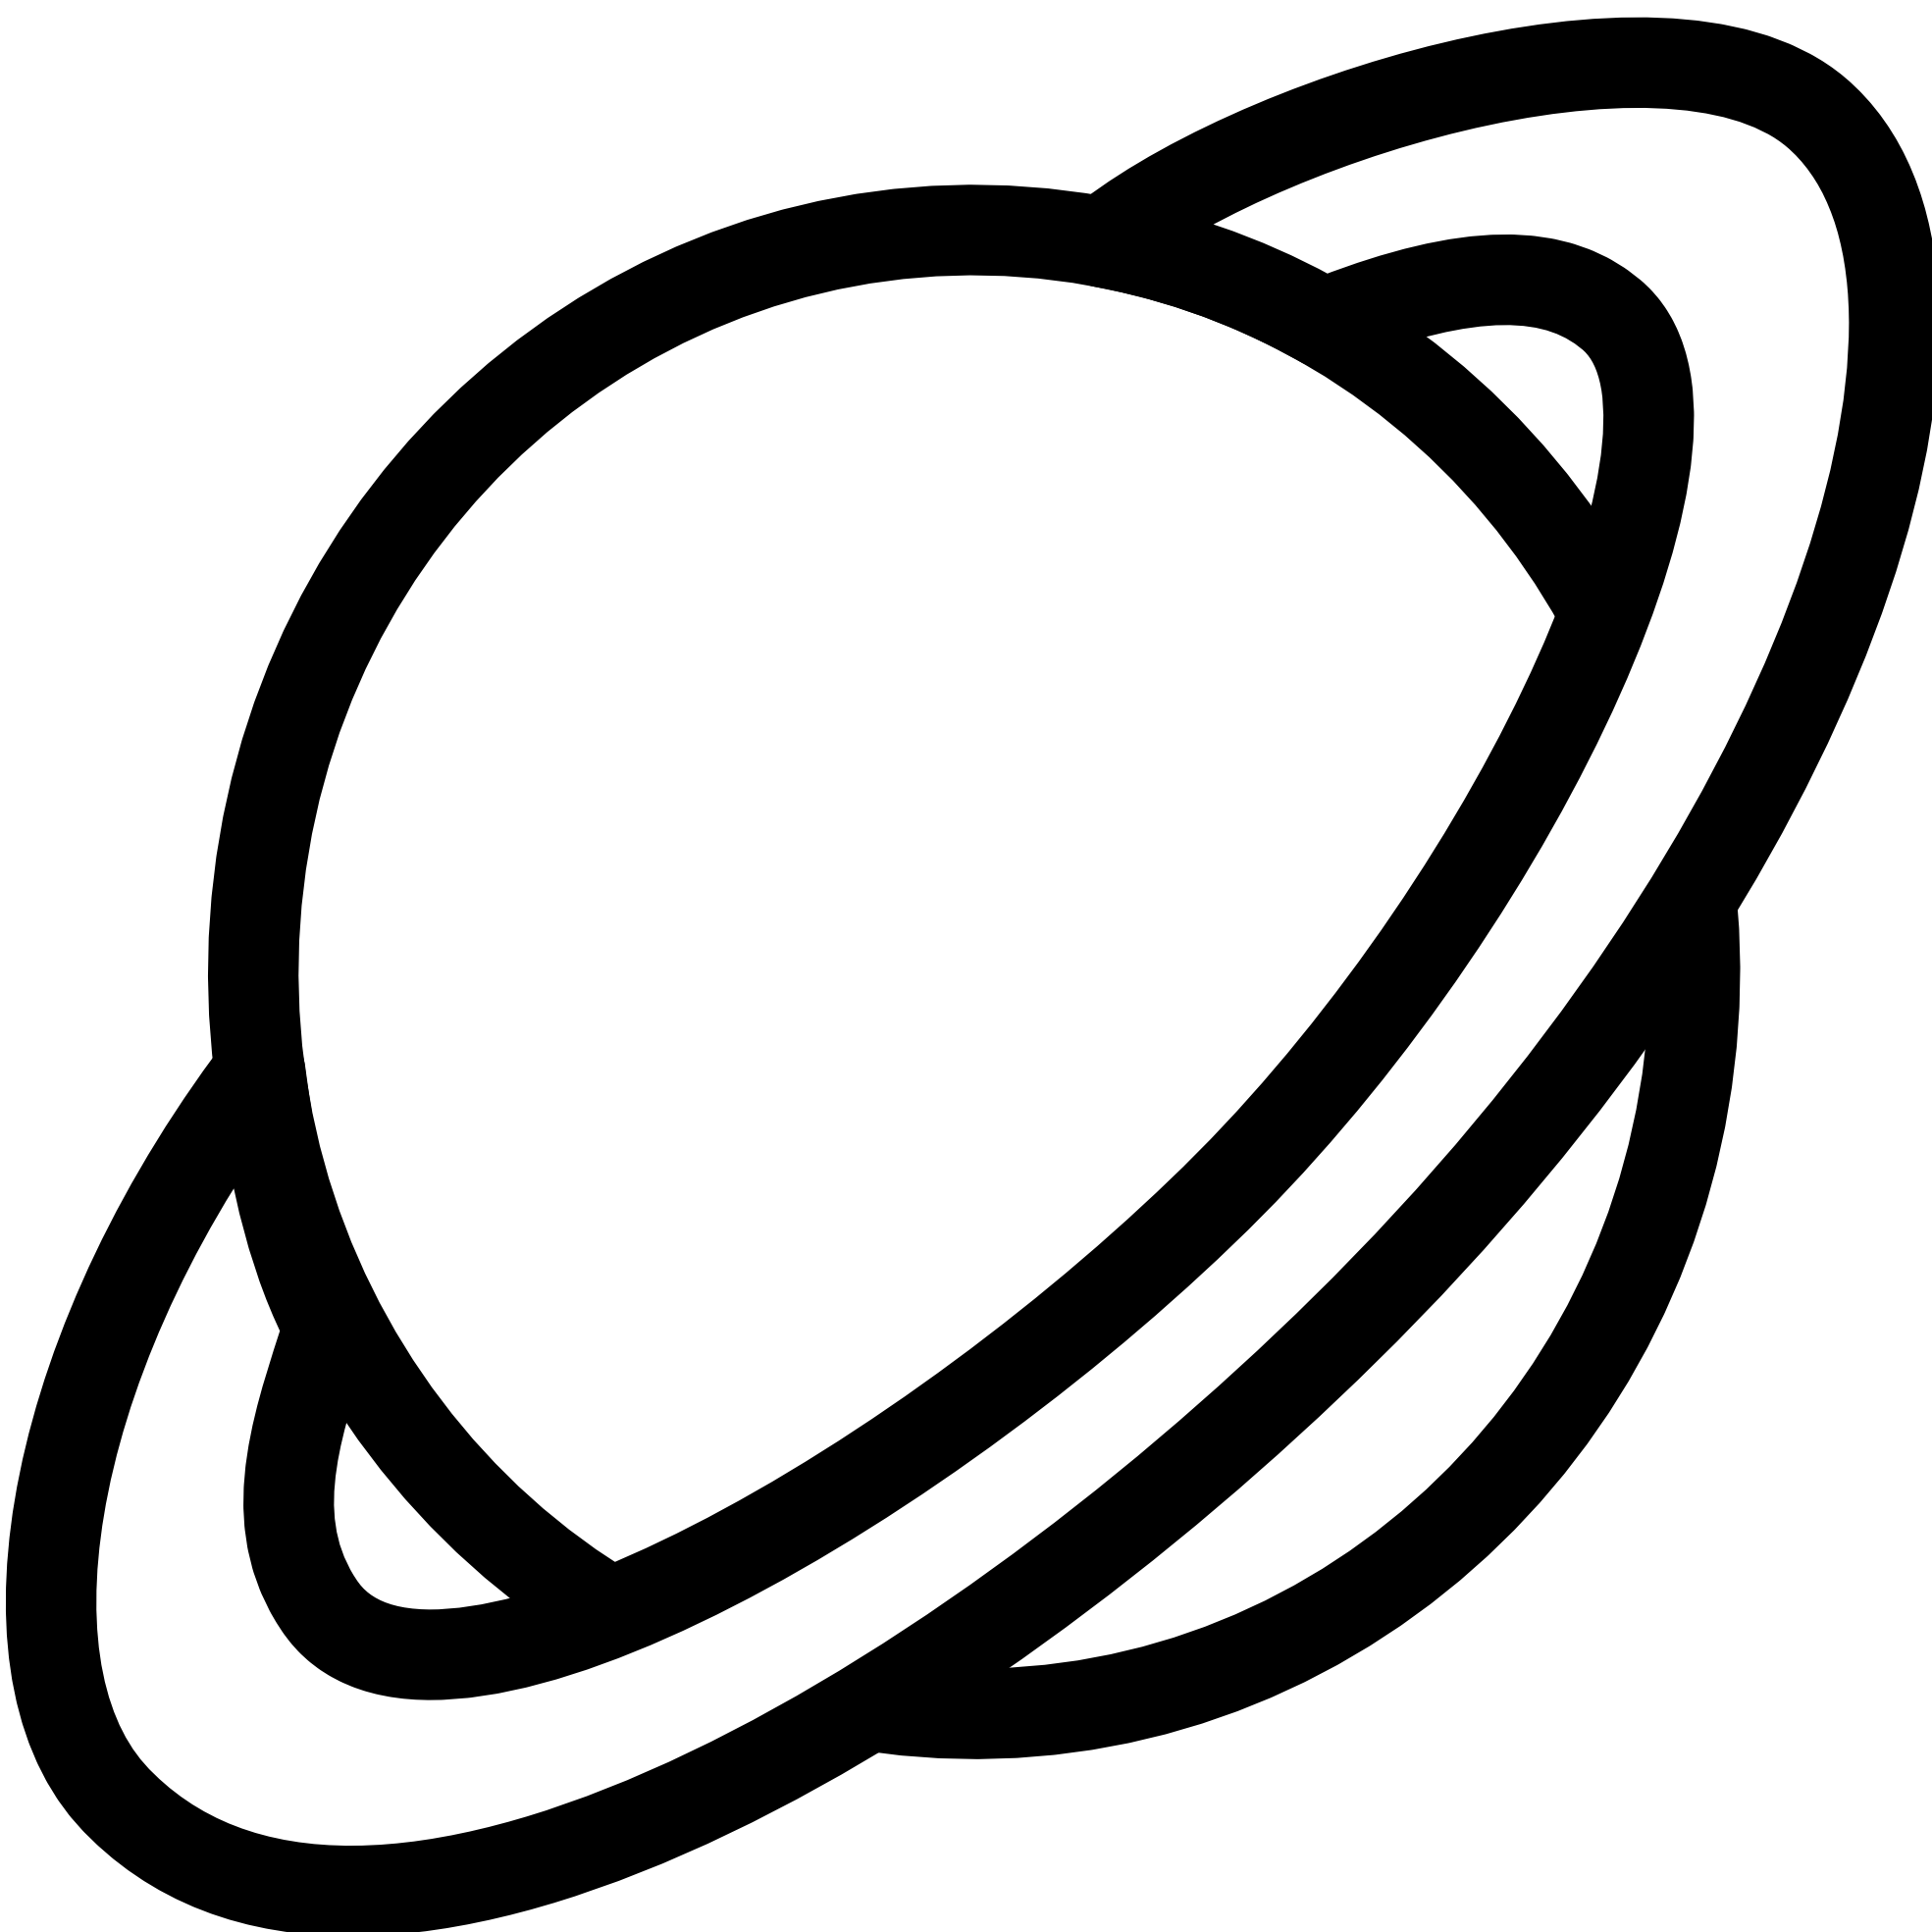 Saturn clipart planet outline. Icon black white panda